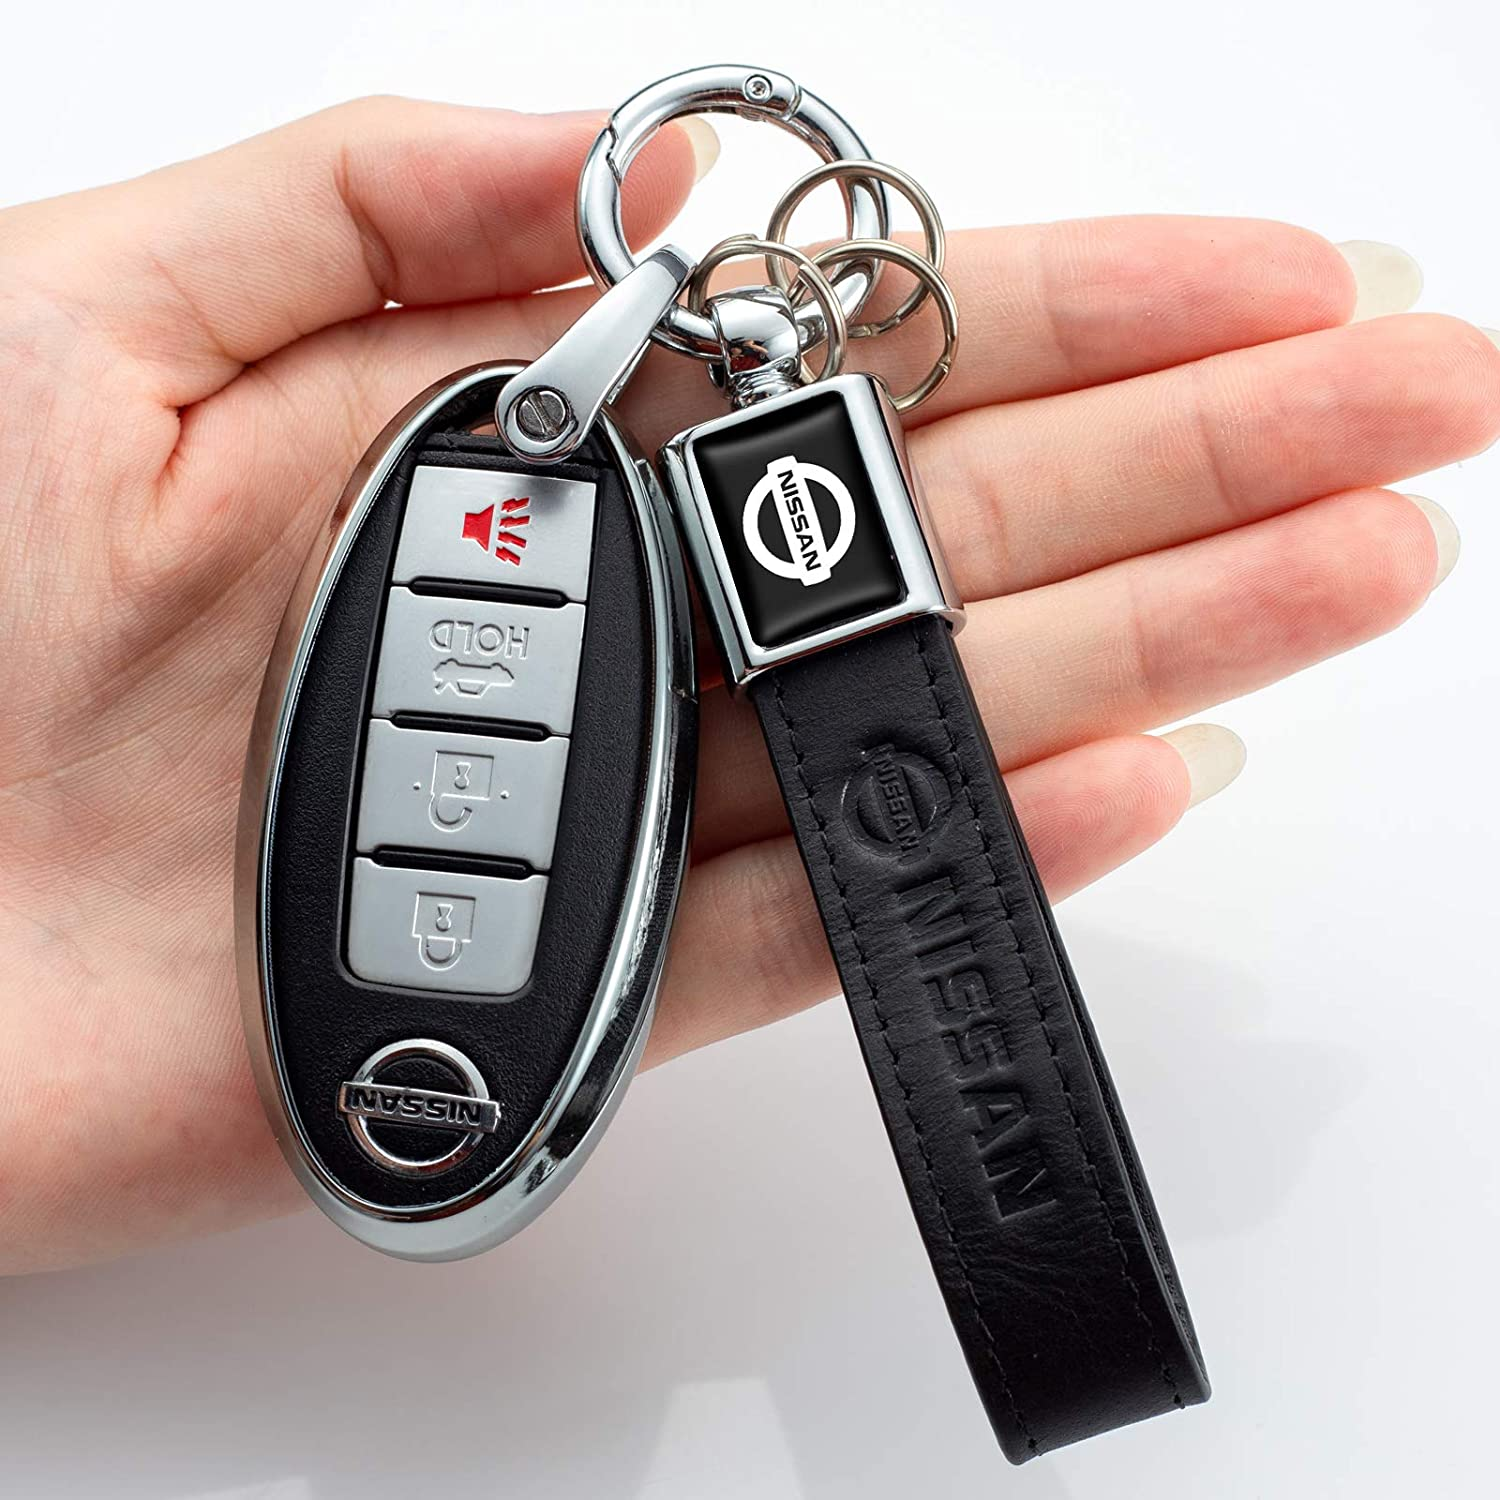 for Nissan Key Fob Cover,Key Fob Case for Nissan Altima Maxima Murano Rogue Sentra 370z Pathfinder Smart Remote Premium Soft TPU Nissan Key Cover 4 Button red